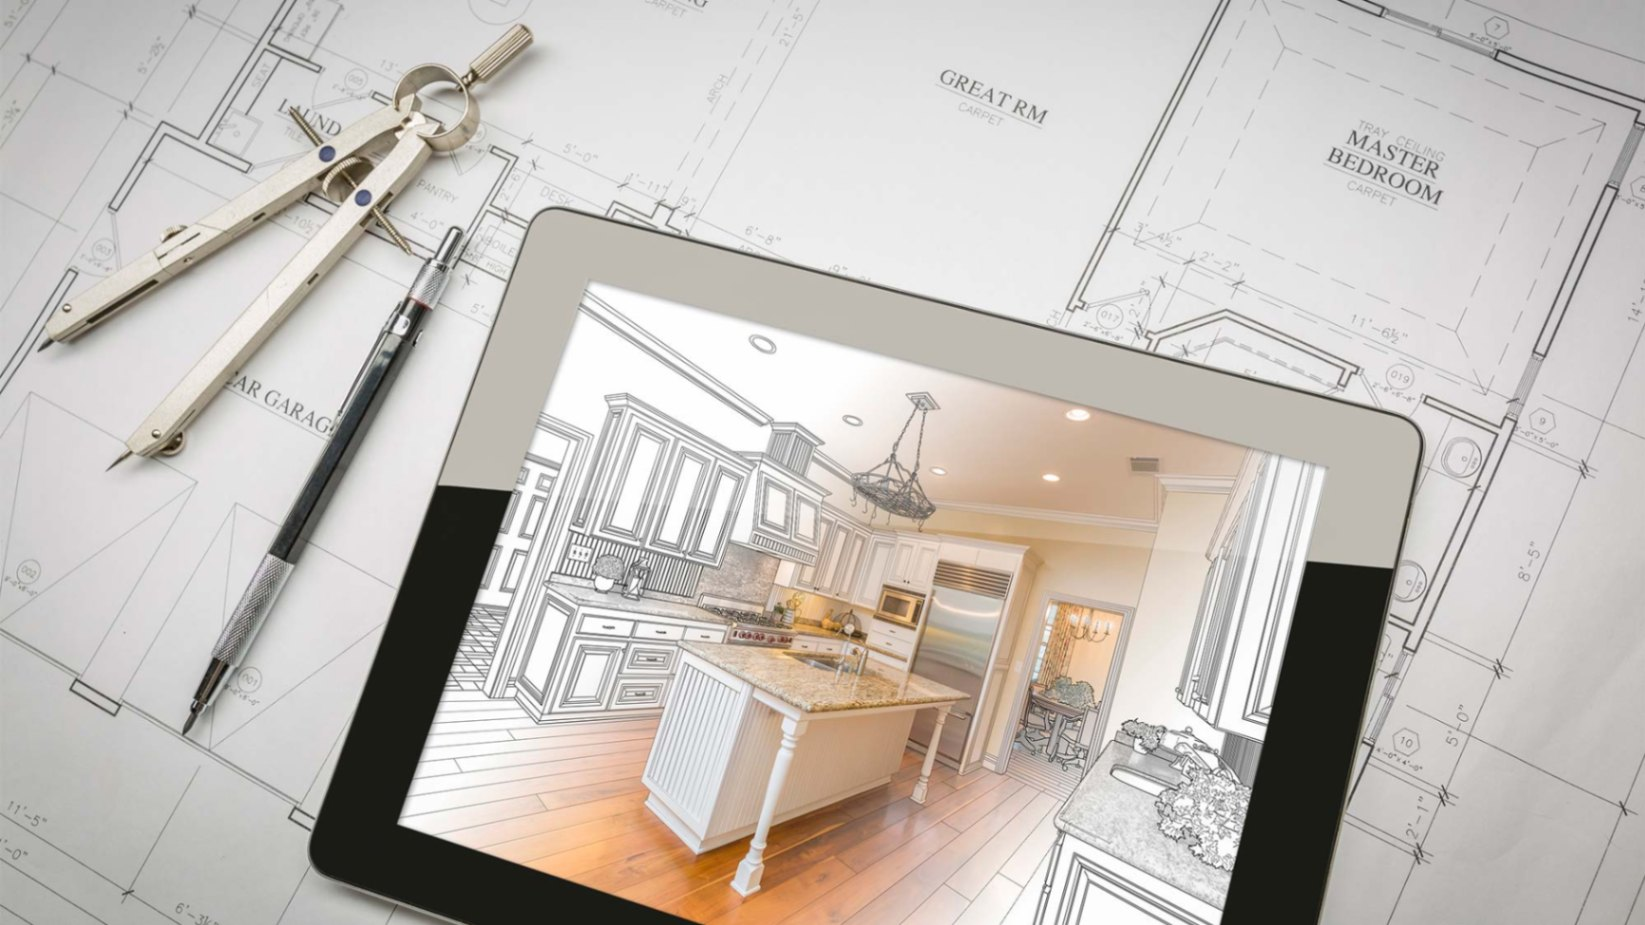 Renovation Application to Plan a Construction Site - Learn How to Download for Free